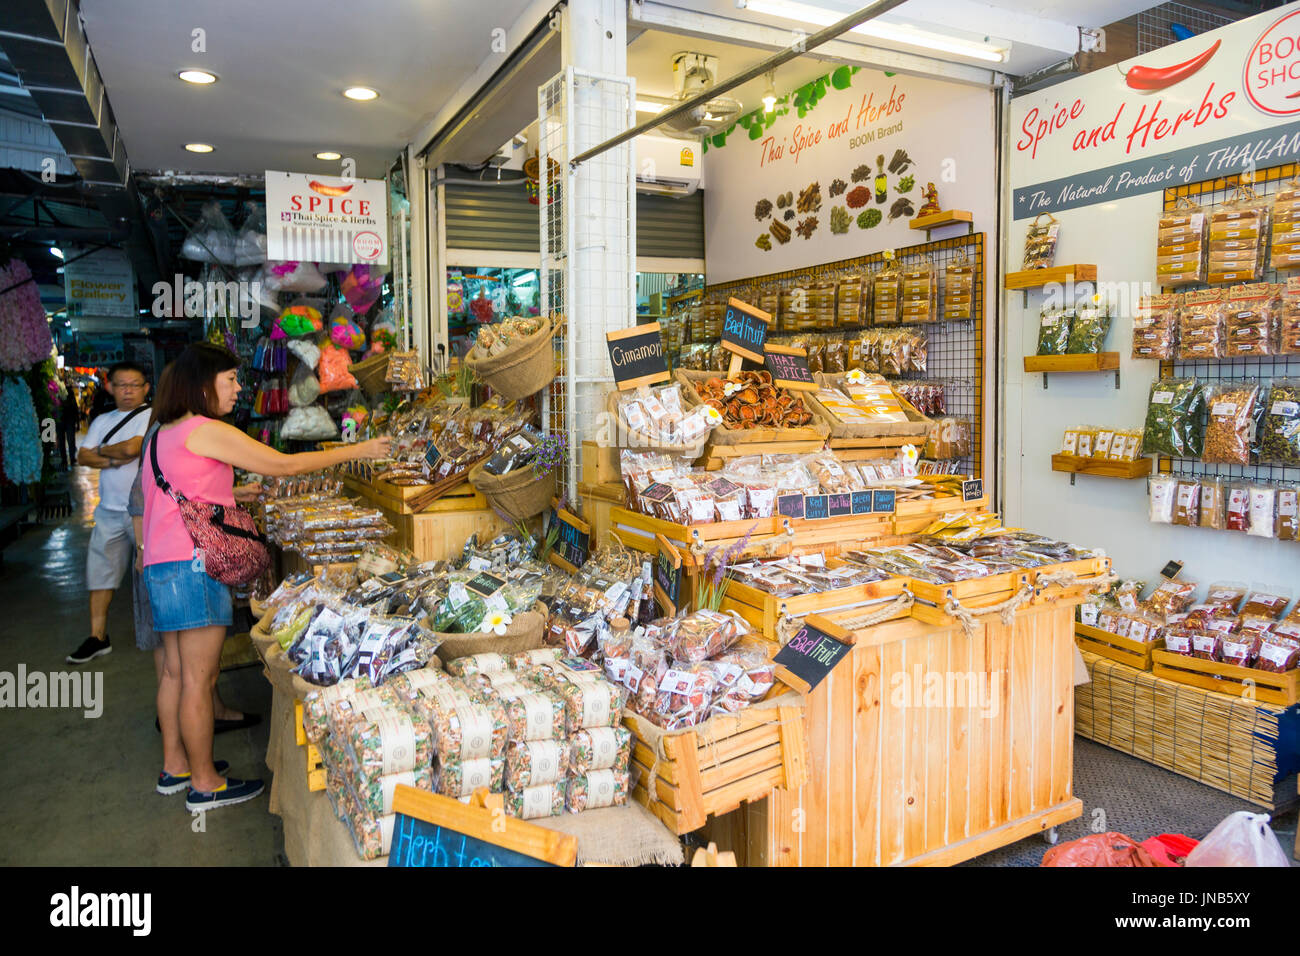 Spices and herbs stall at Chatuchak Market, Bangkok, Thailand - Stock Image